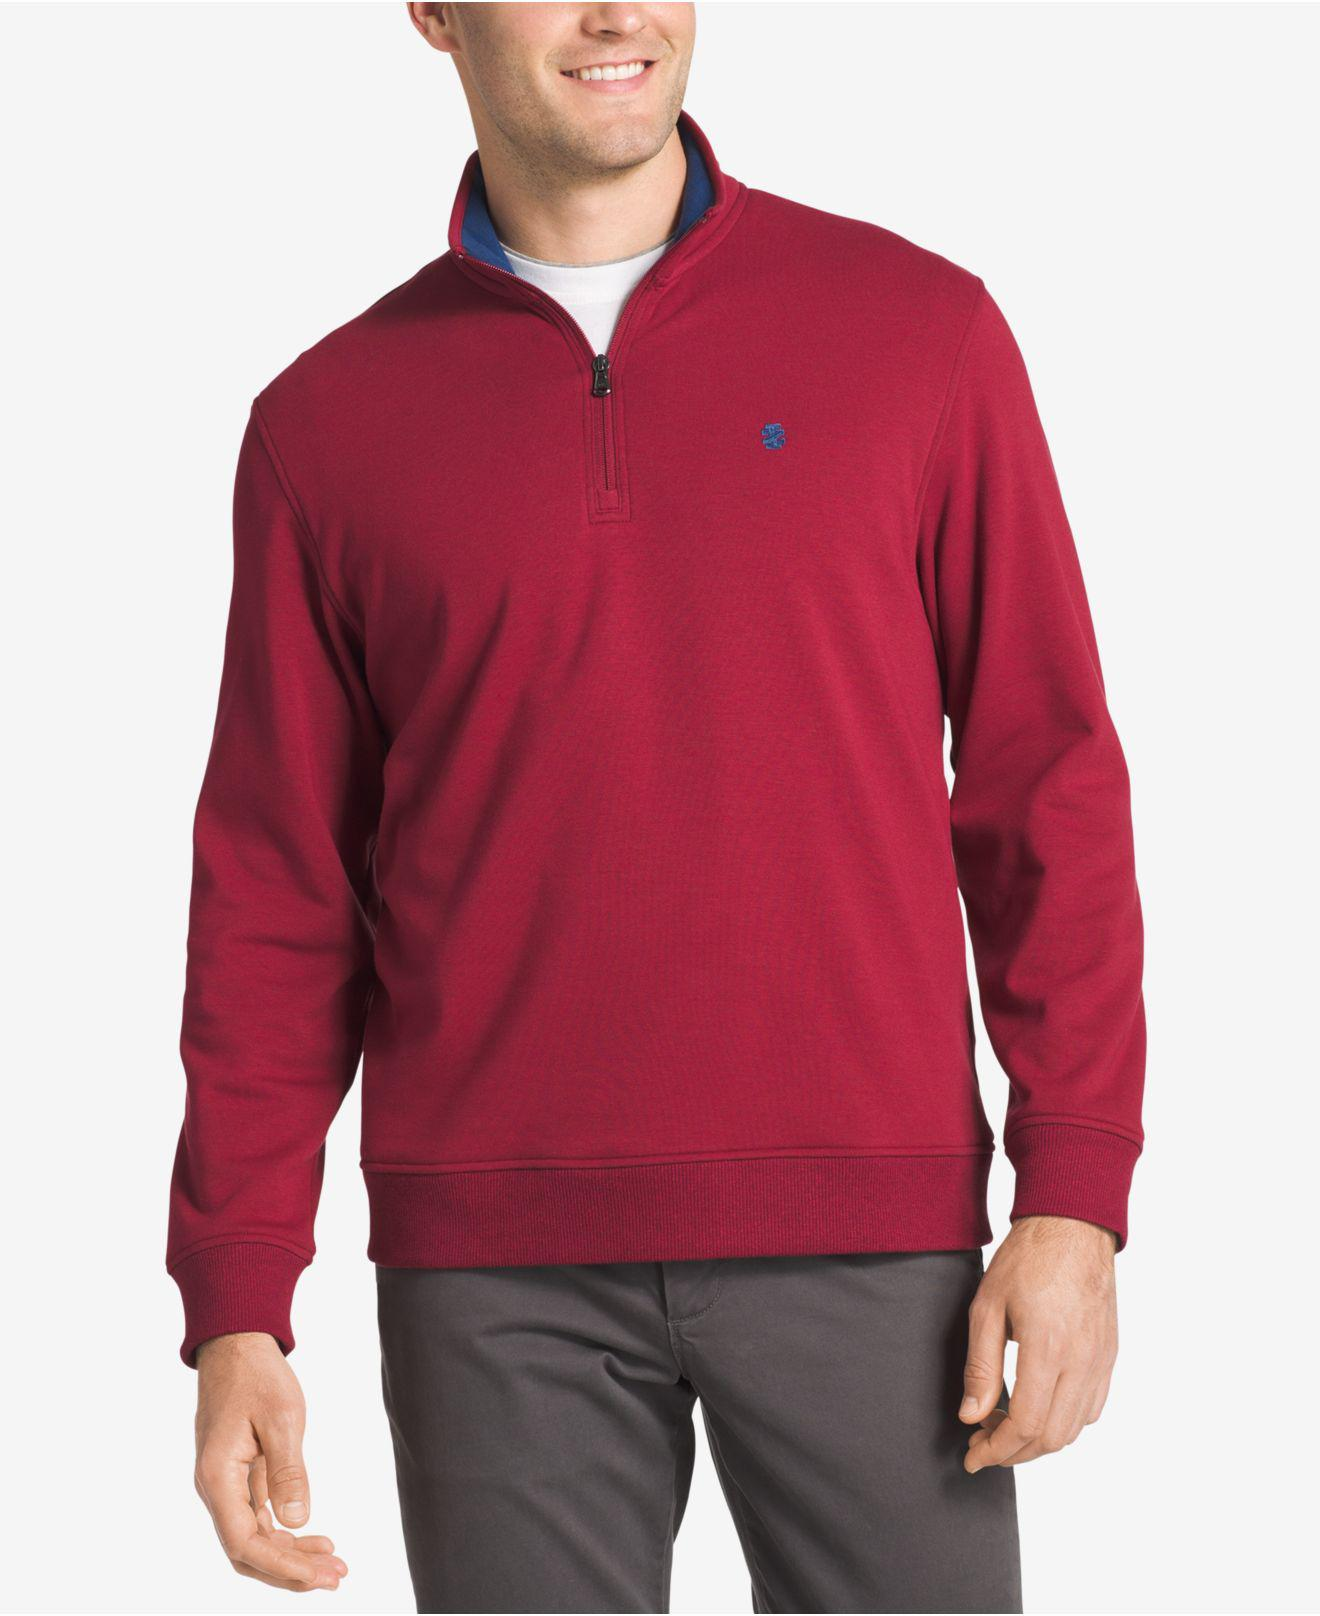 Izod Men's Advantage Stretch Quarter-zip Sweater in Red for Men | Lyst